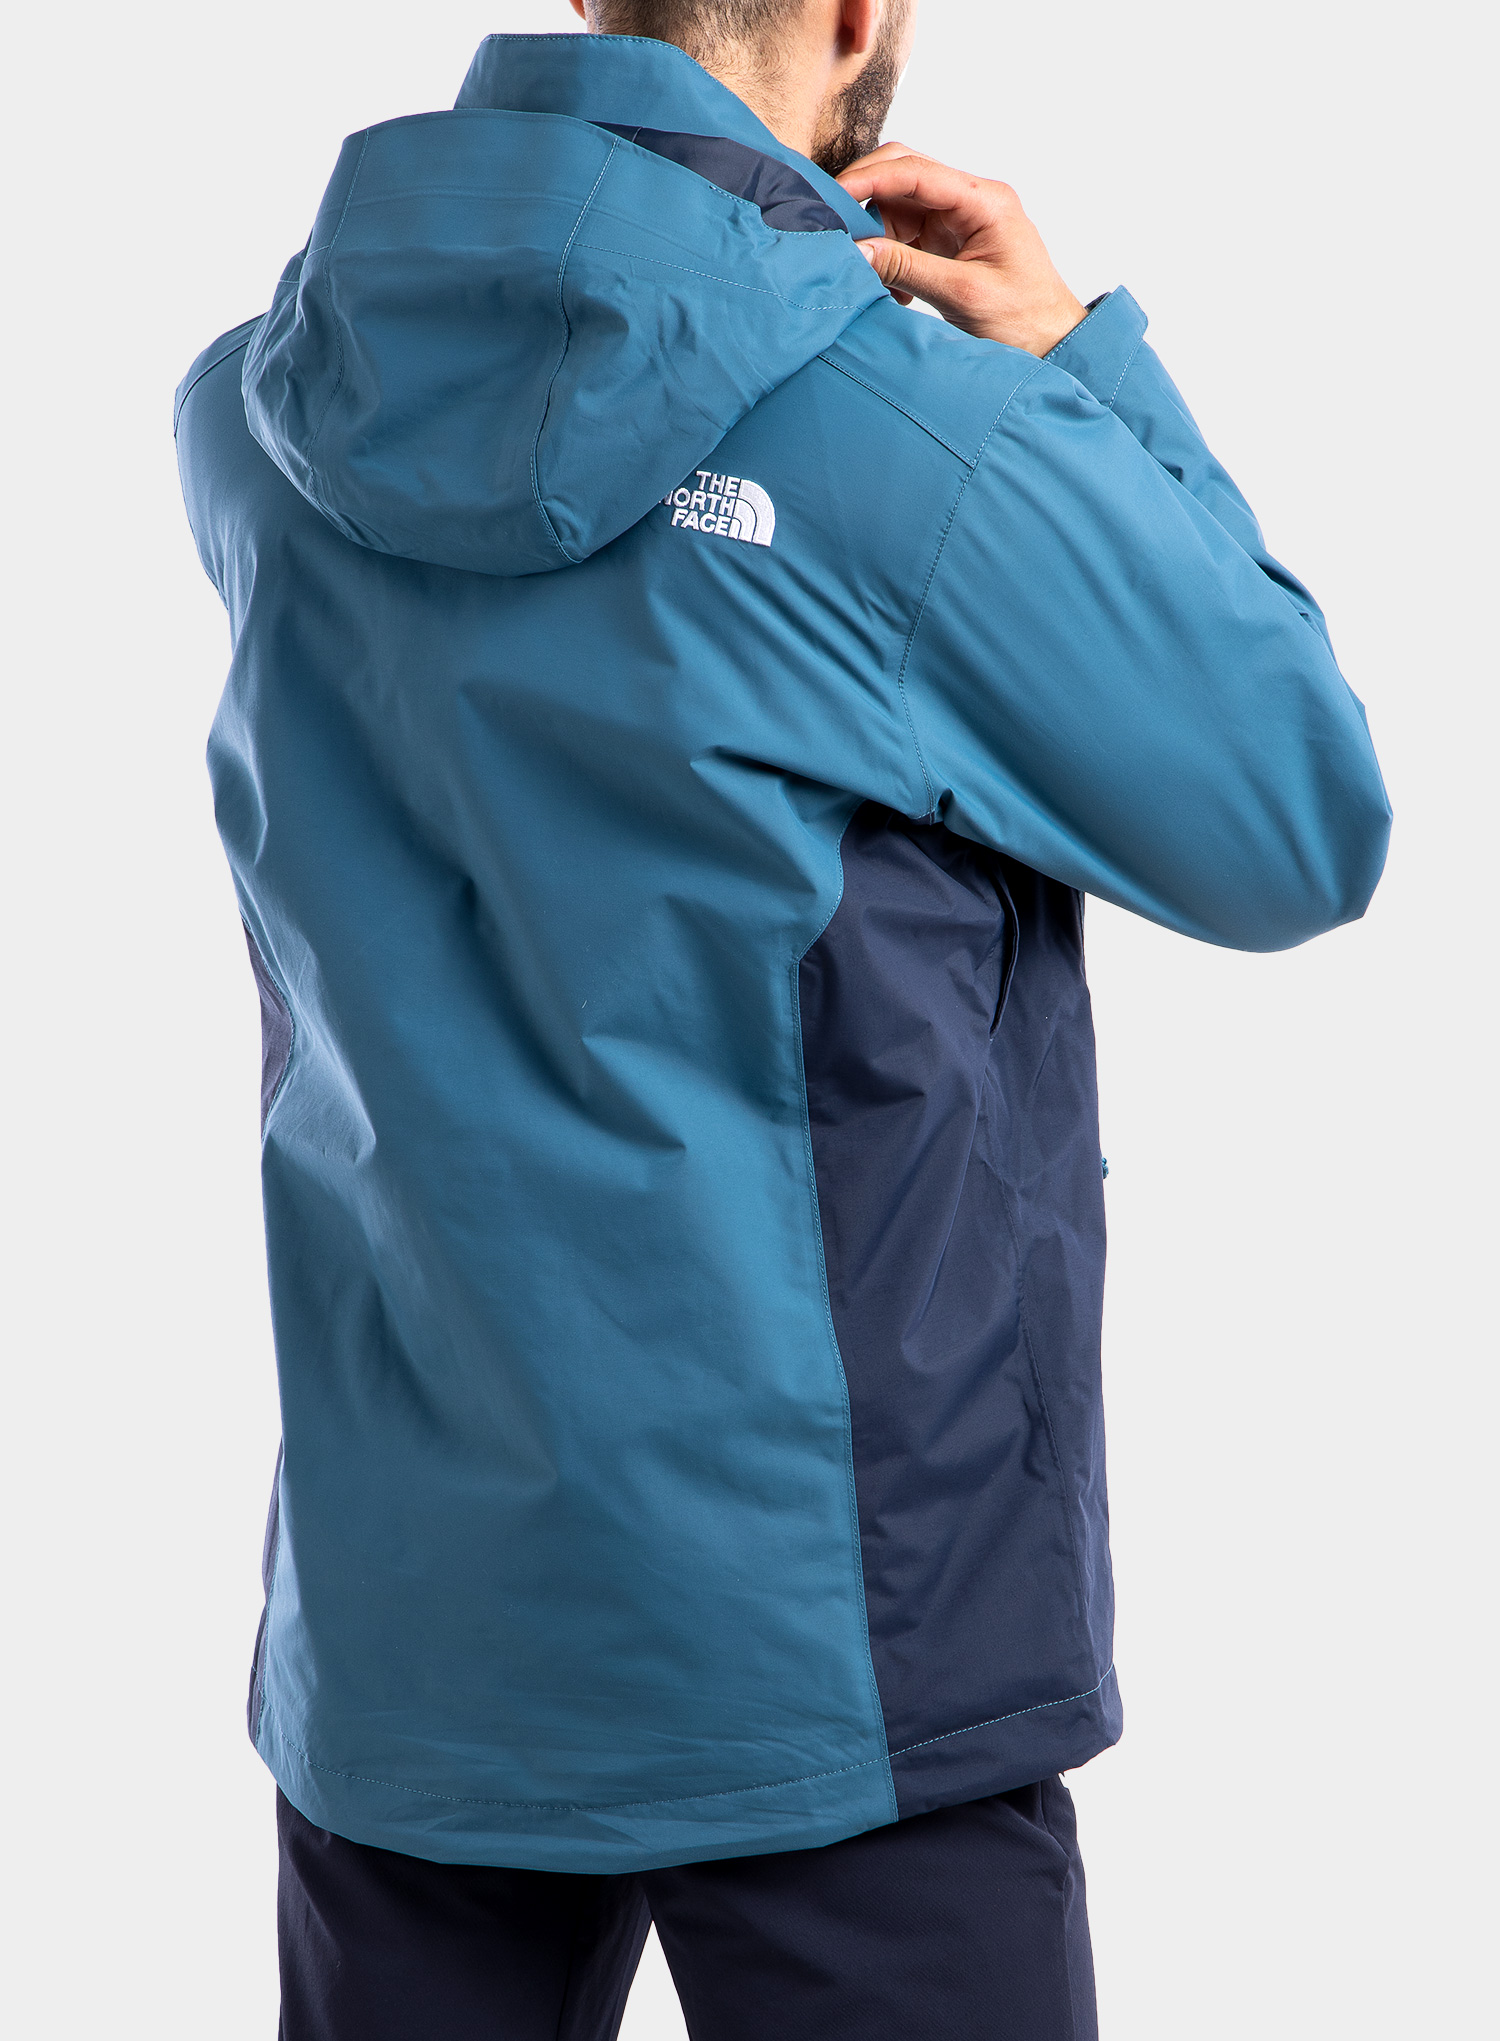 Kurtka The North Face Evolution II Triclimate - blue/navy - zdjęcie nr. 6